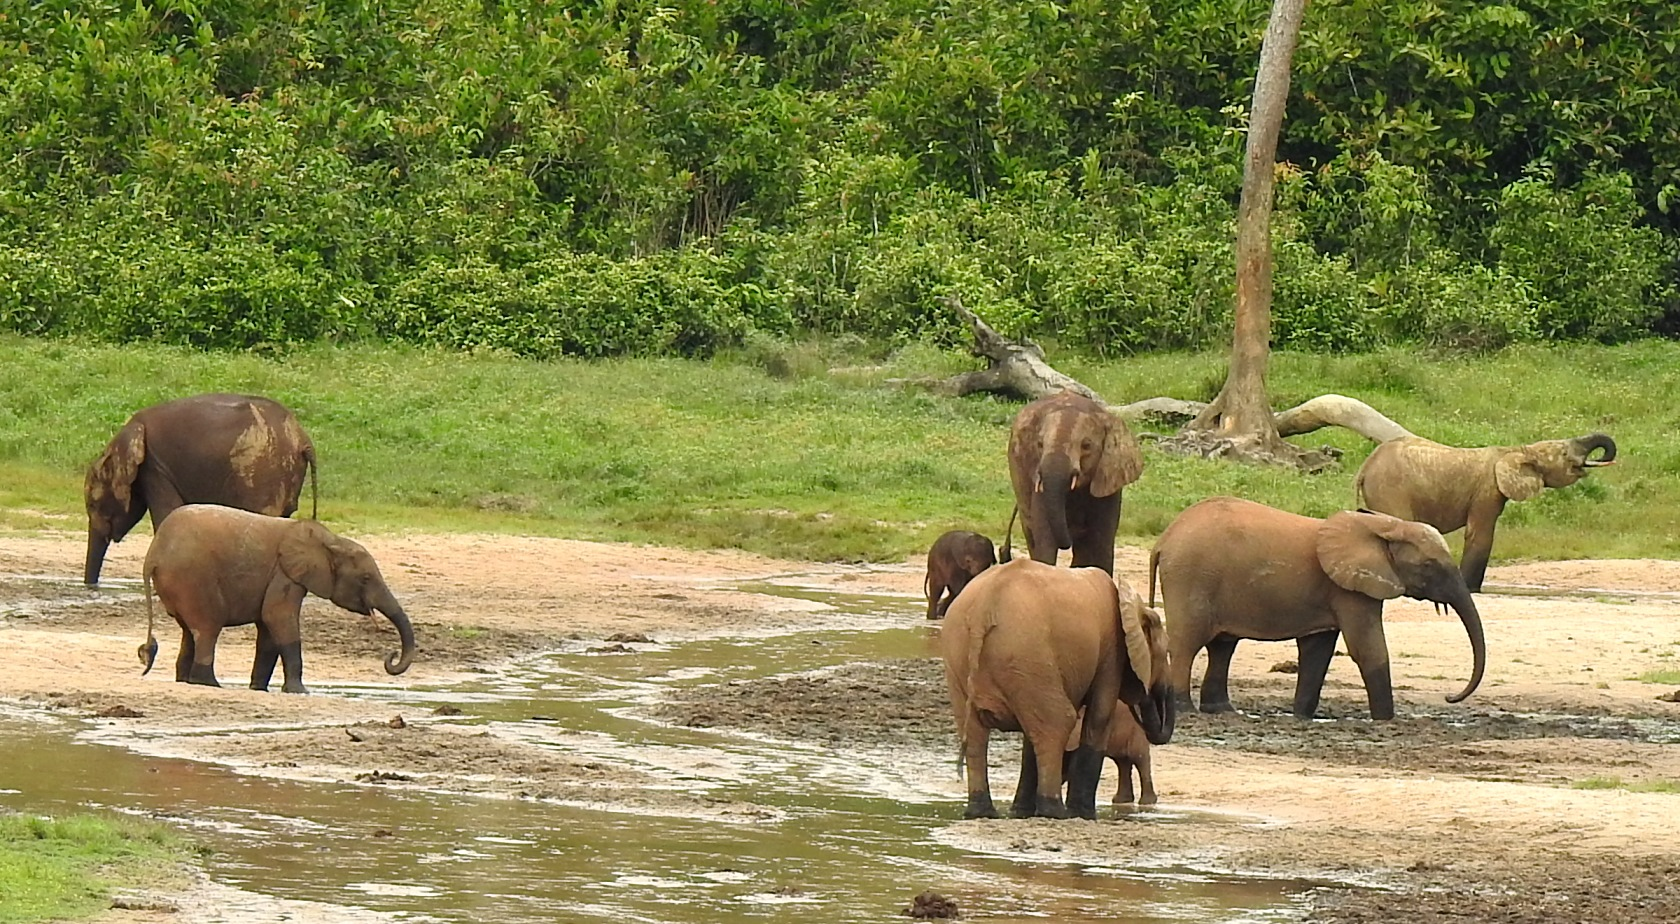 Forest elephants drinking in honor of World Elephant Day, August 12. Their persistence is critical to the regeneration of most large rainforest trees in Central Africa.